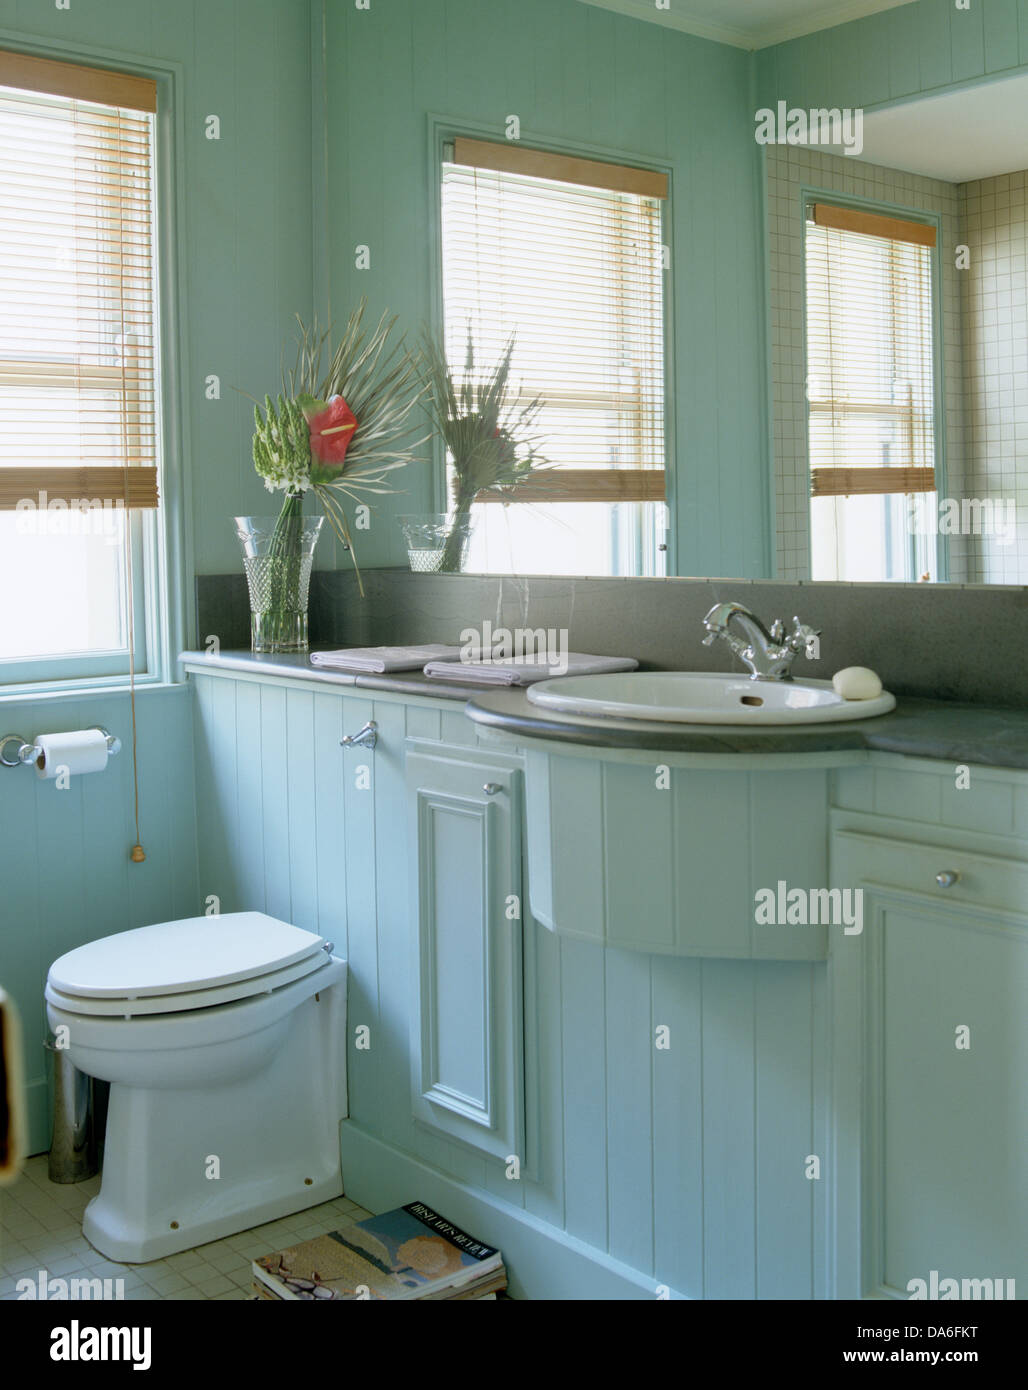 Mirrored wall above basin and toilet in tongue+groove paneled vanity ...